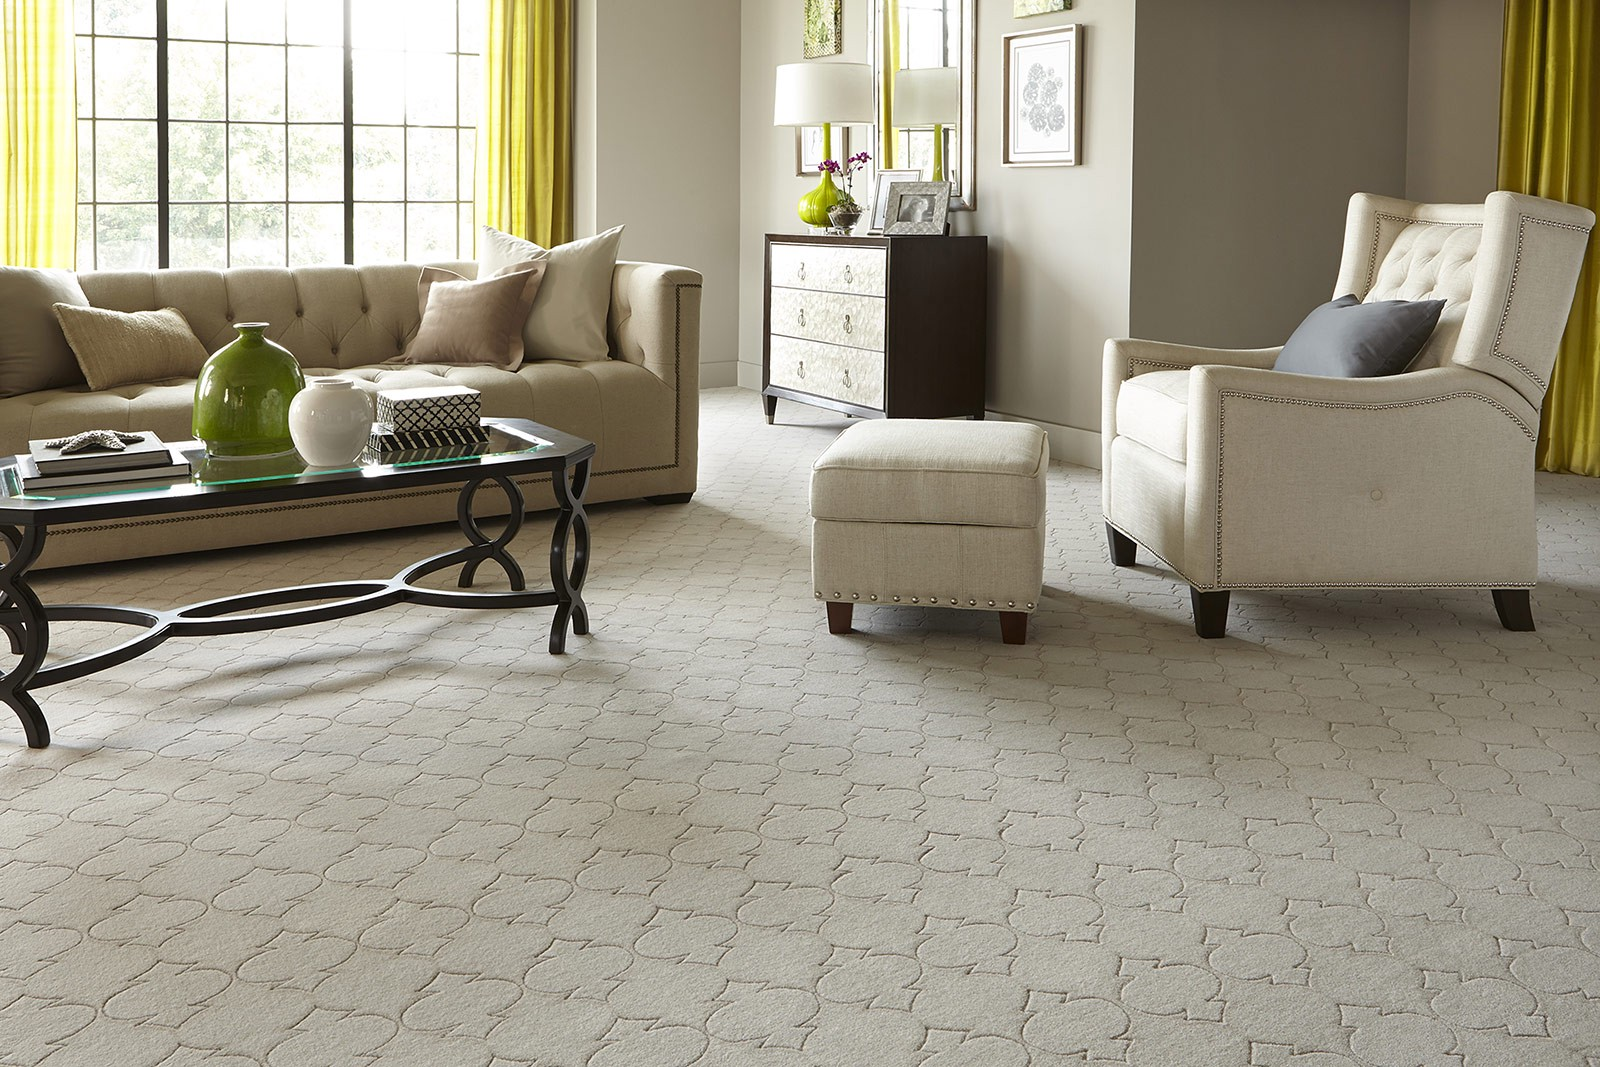 Area Rug vs. Wall to Wall Carpet for Home Decor